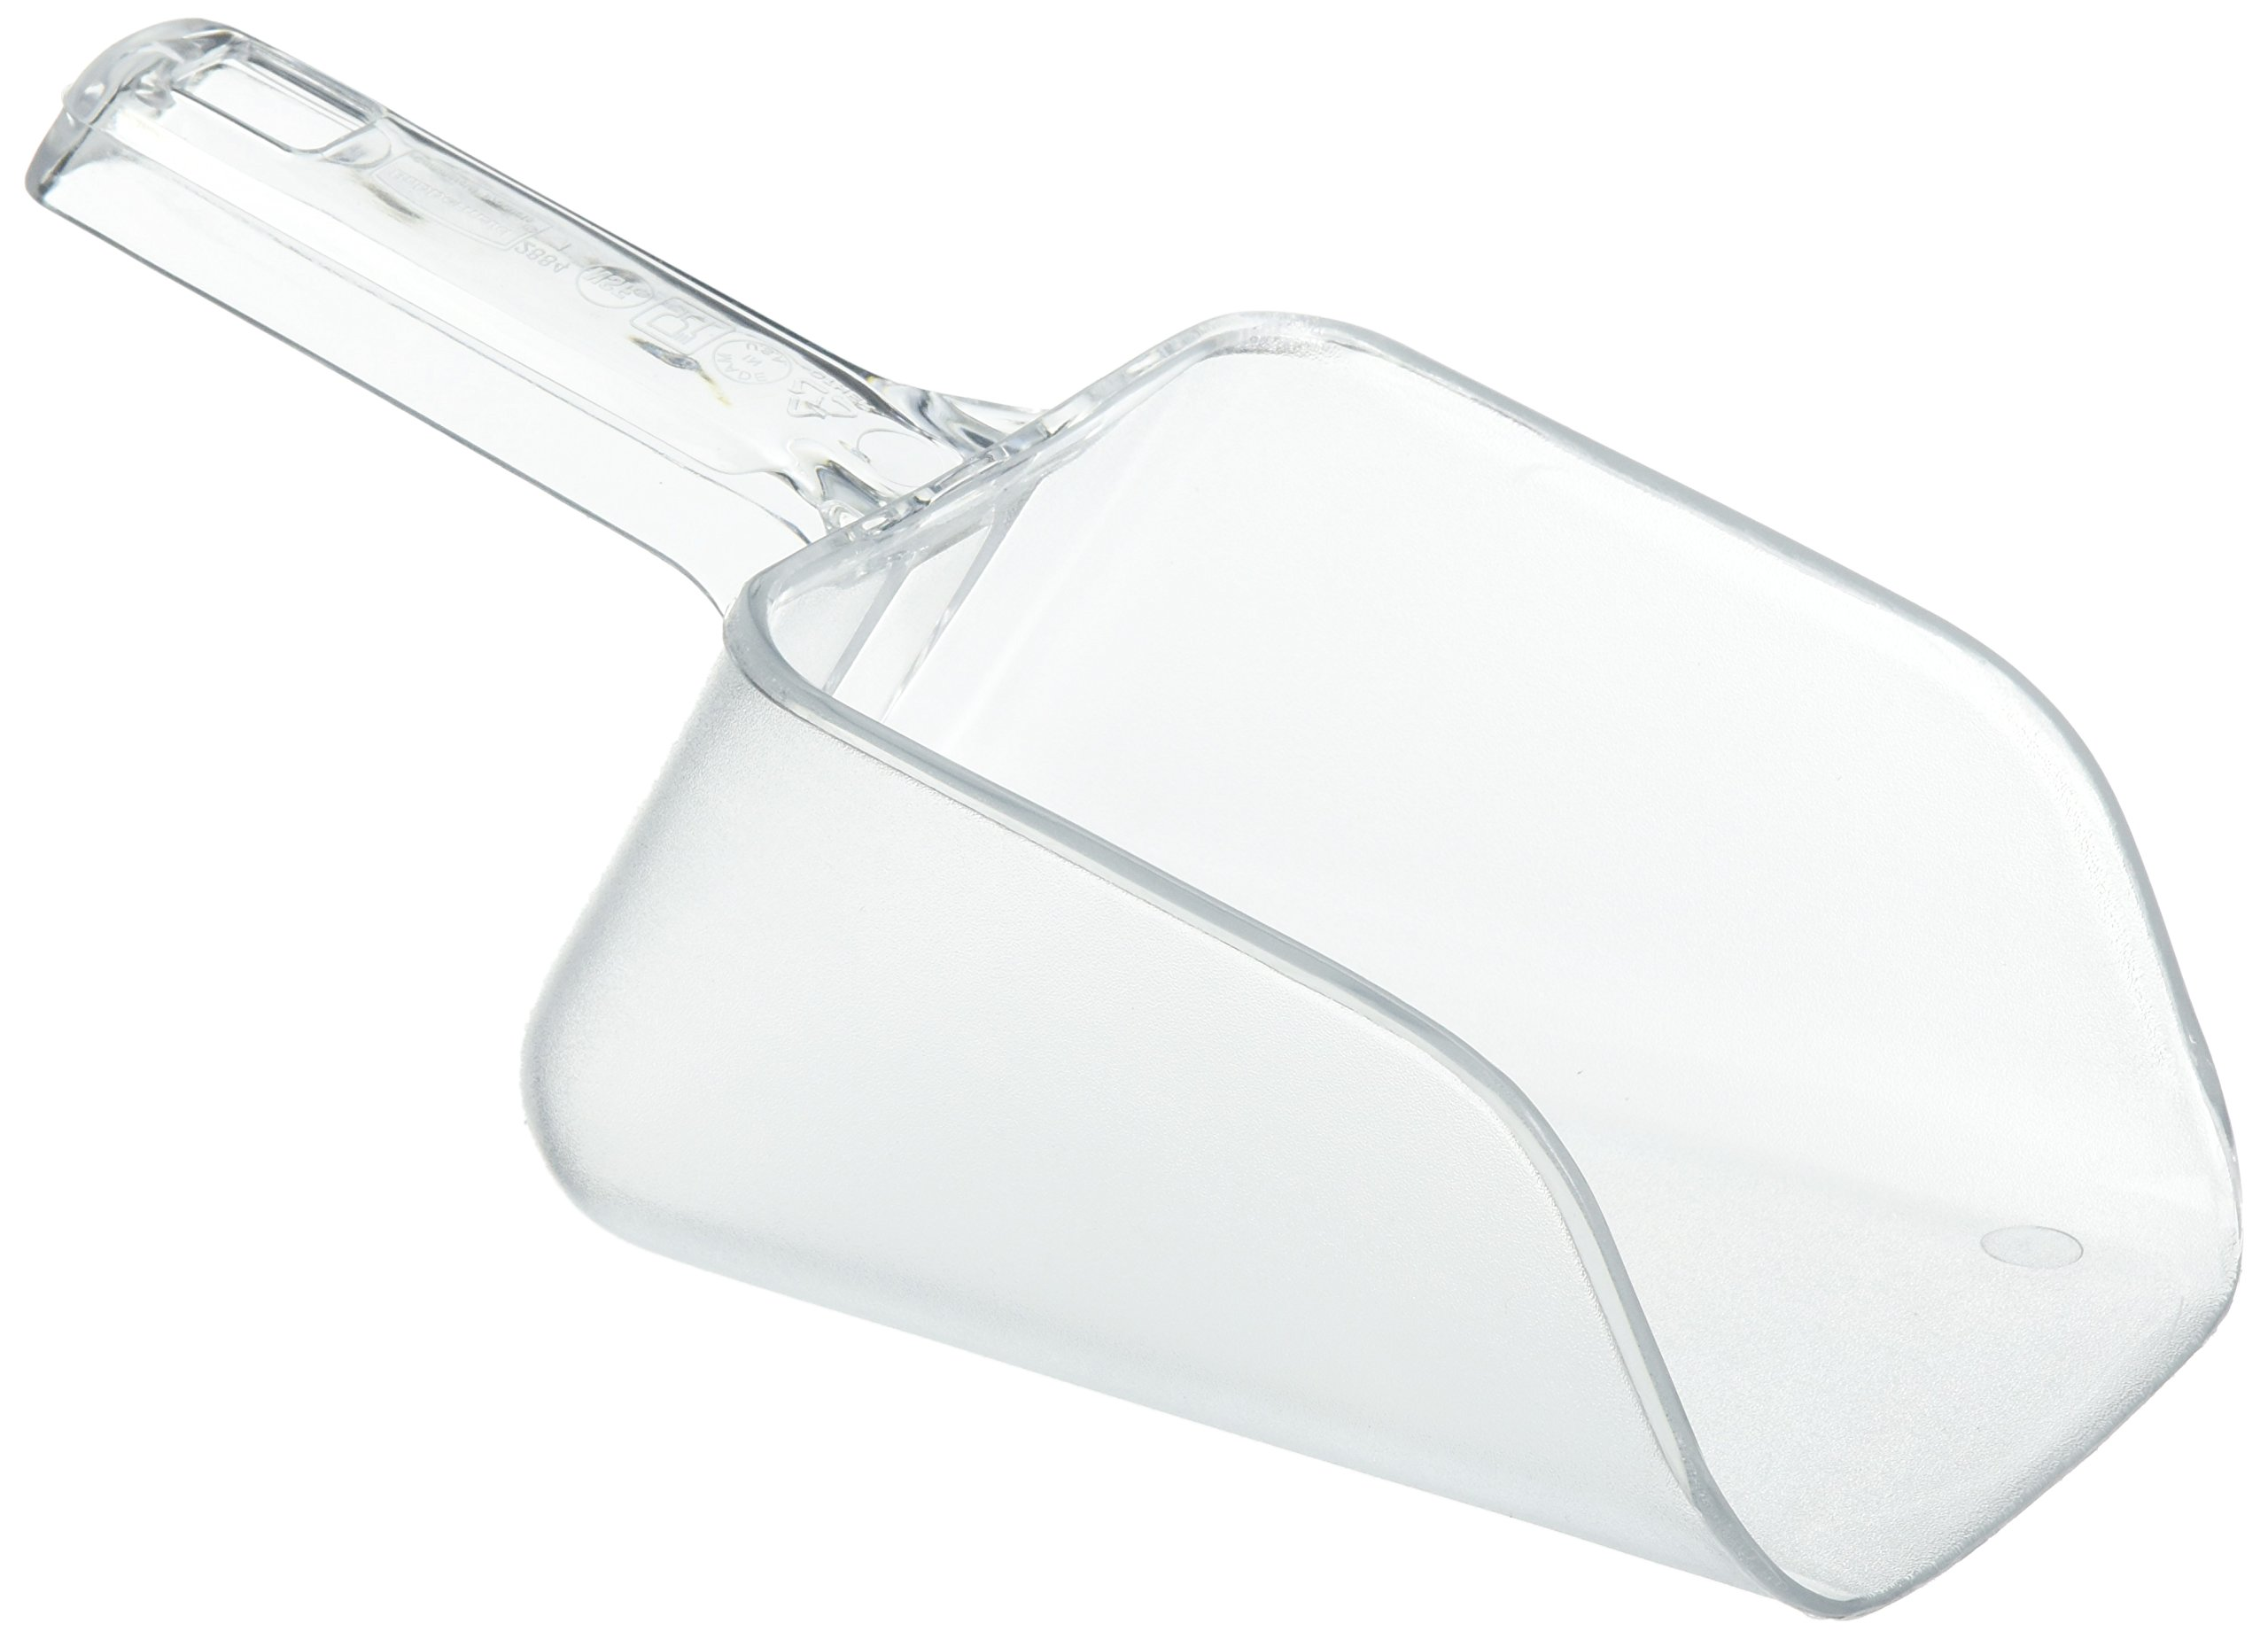 Rubbermaid Commercial Bouncer Ice Scoop, 32 Ounce, Clear, FG288400CLR